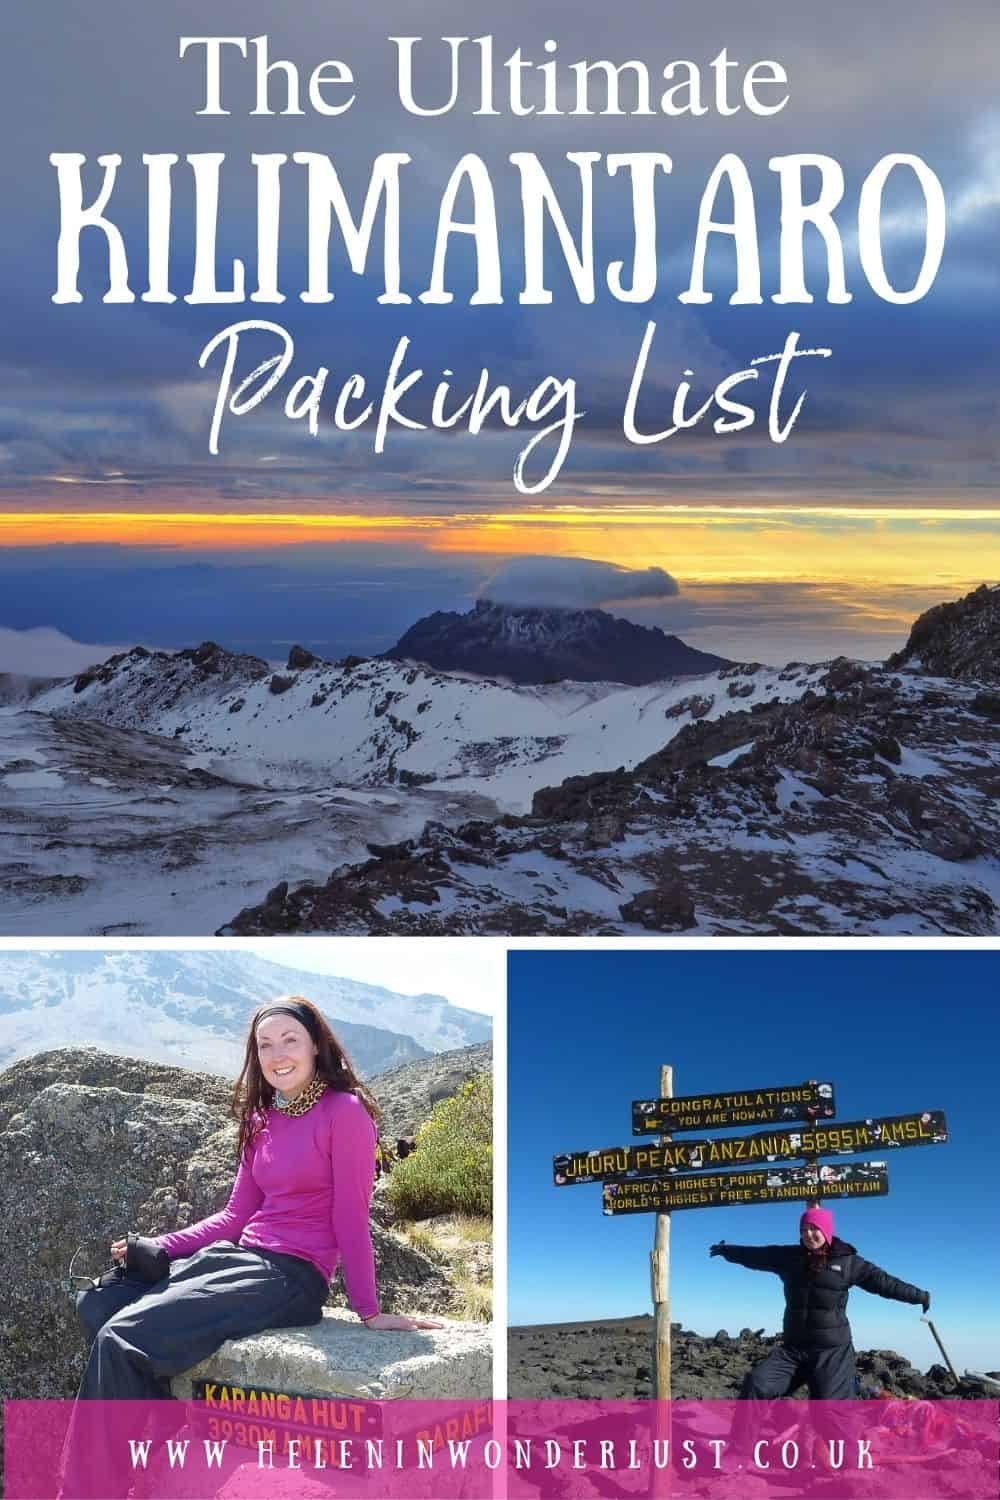 The Ultimate Kilimanjaro Packing List - Clothing, Shoes & Equipment